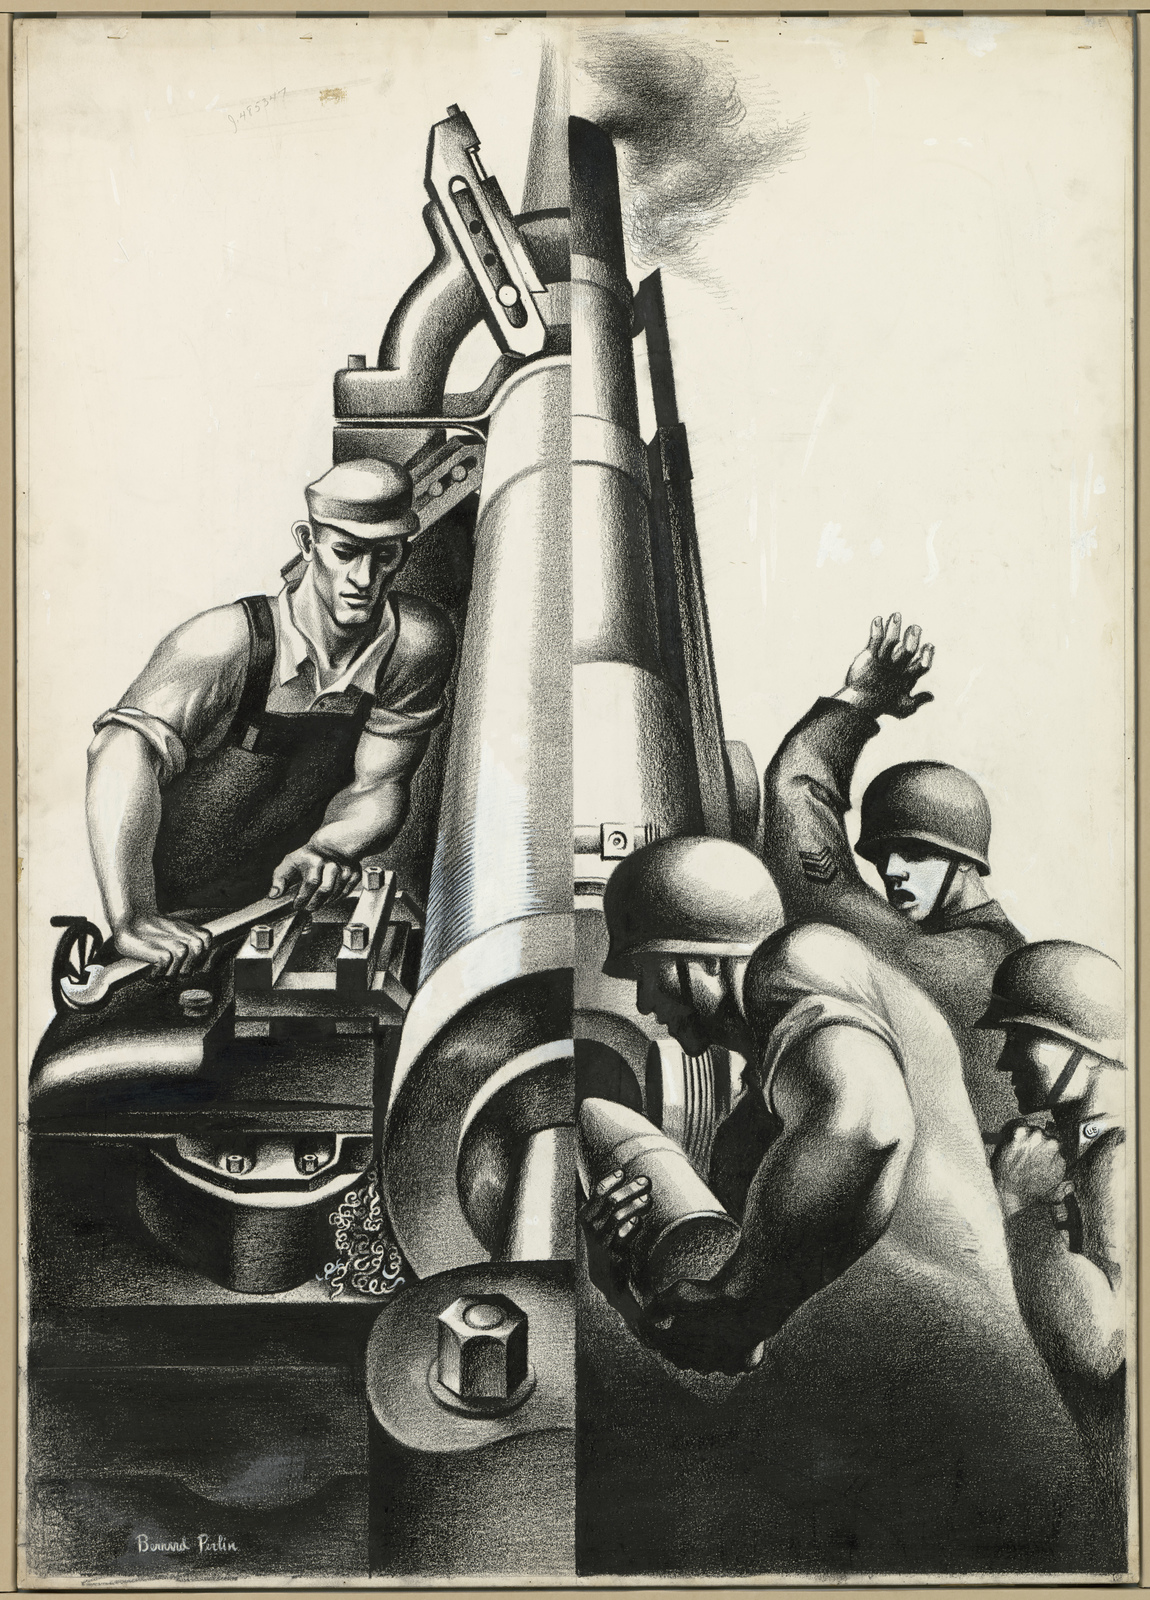 [Two different images put together.  One image shows factory worker and other is artillery men putting missile into the cannon.] [Bernard Perlin]